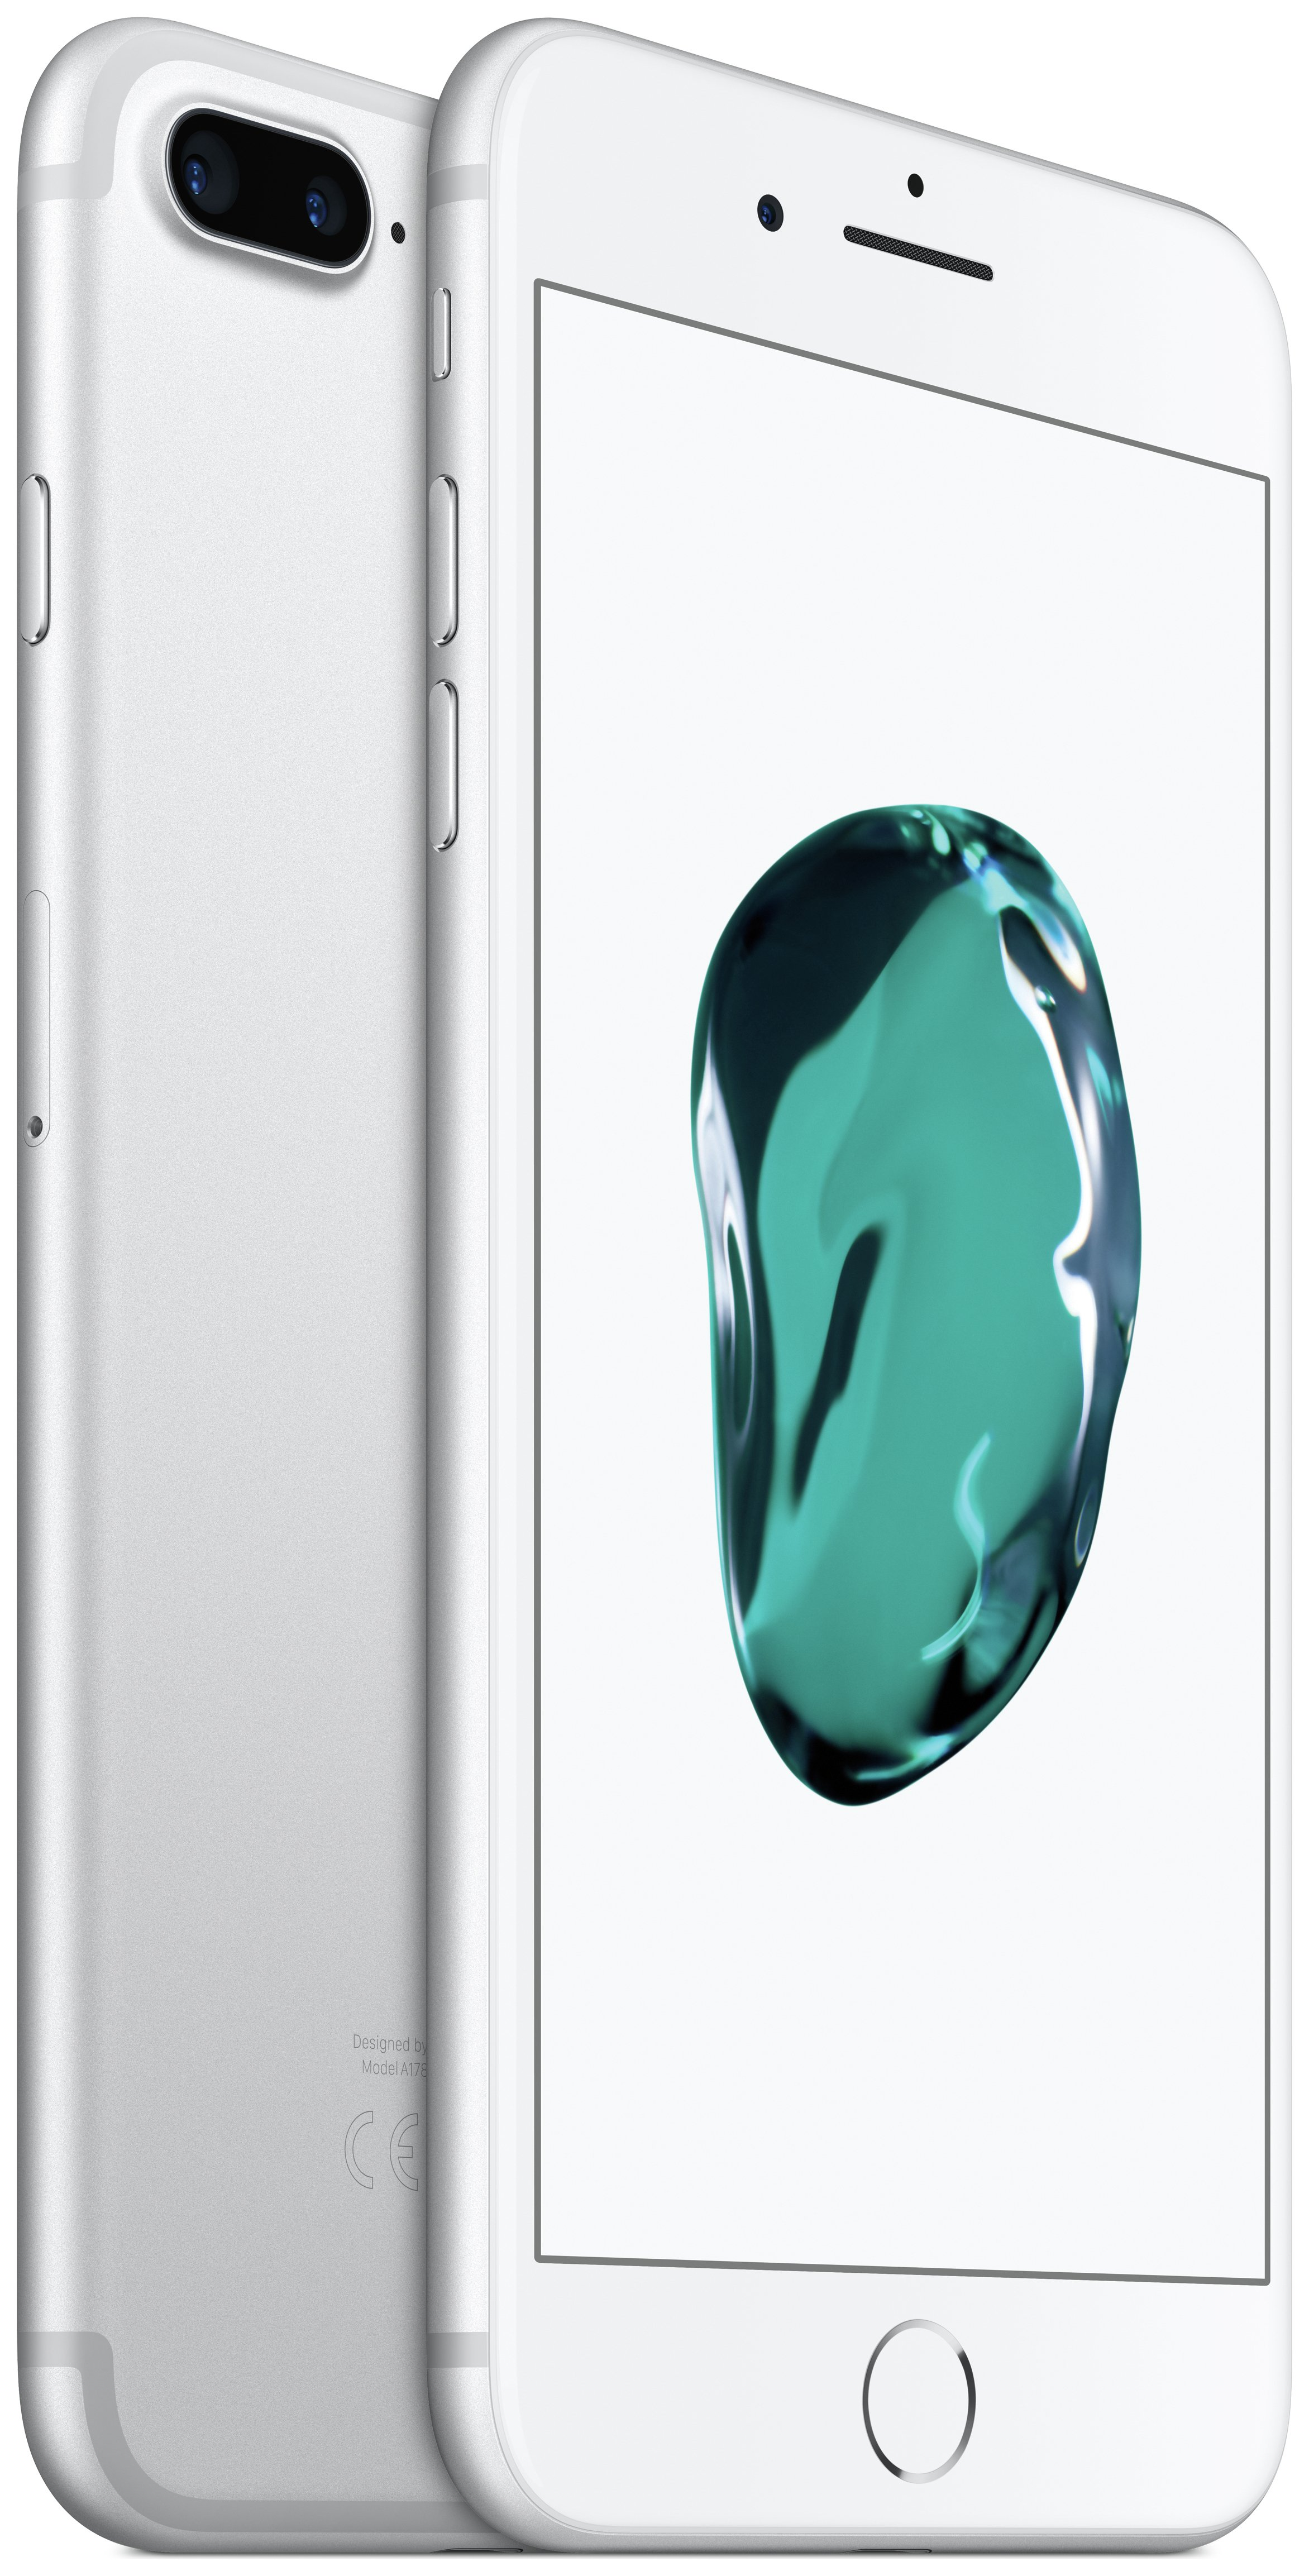 Apple Sim Free iPhone 7 Plus 128GB Mobile Phone - Silver.